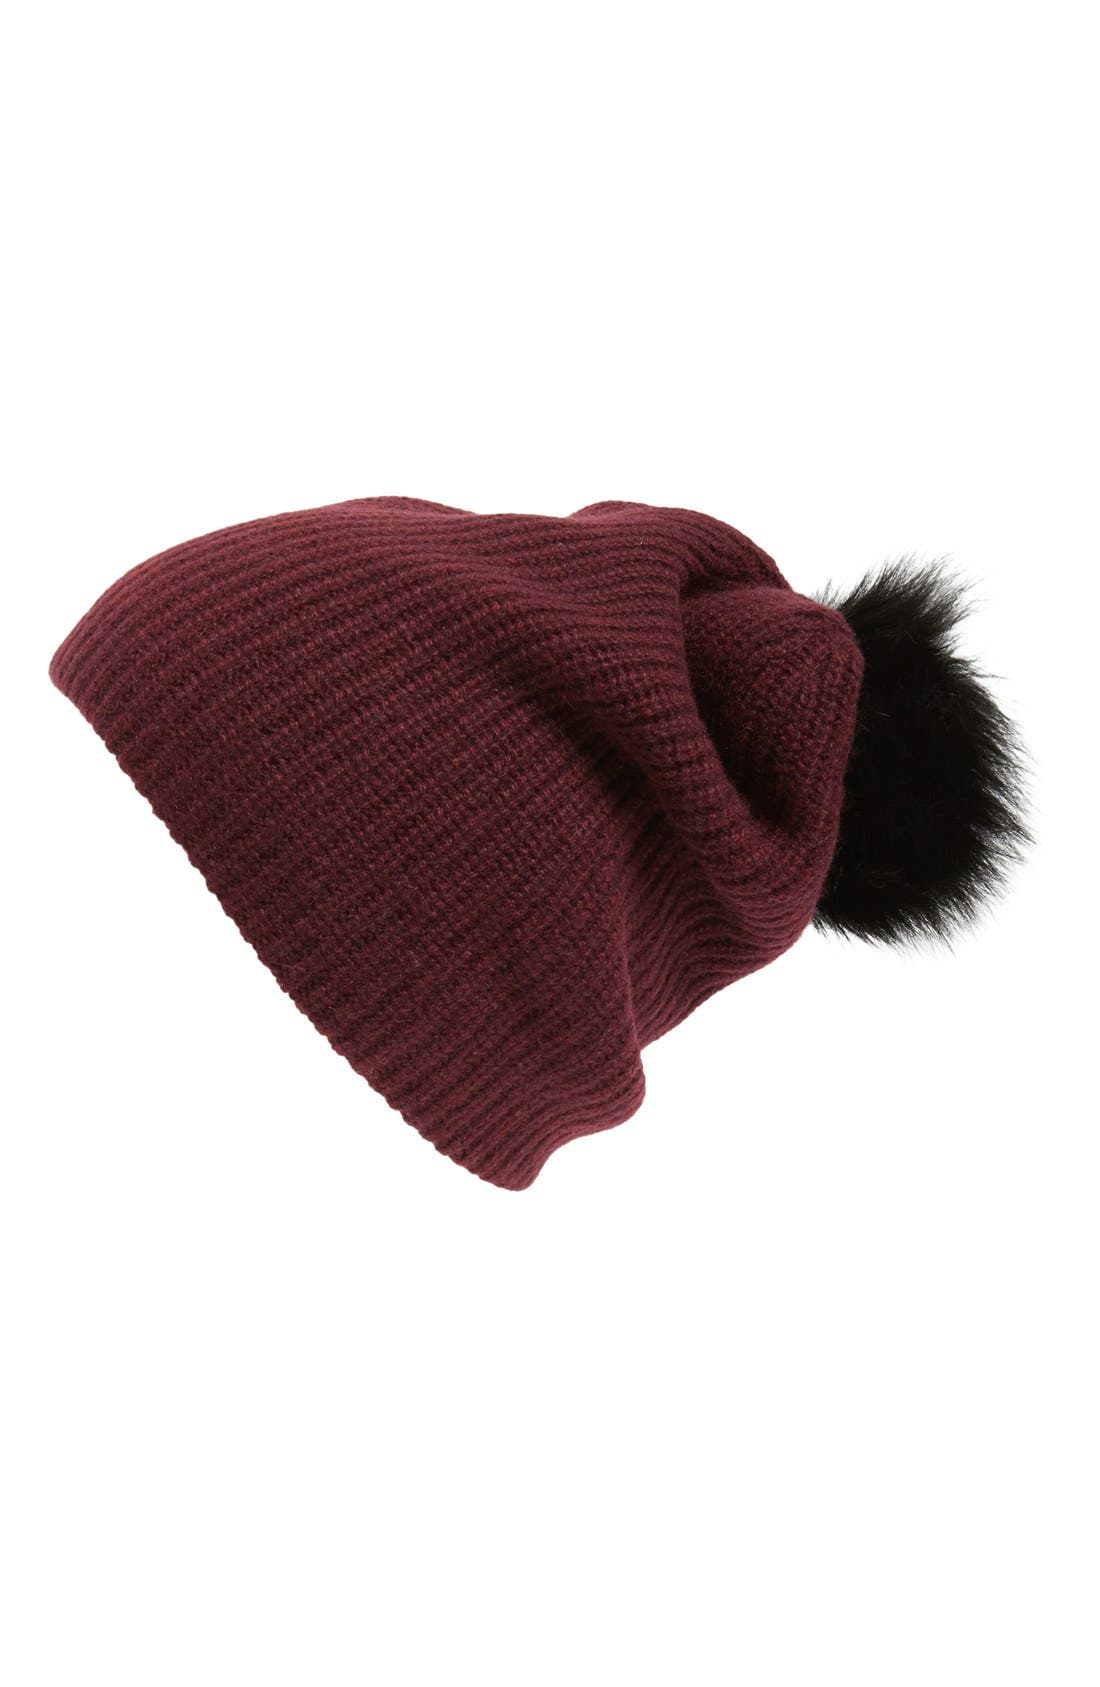 Alternate Image 1 Selected - rag & bone 'Cynthia' Cashmere & Wool Beanie with Genuine Shearling Pompom